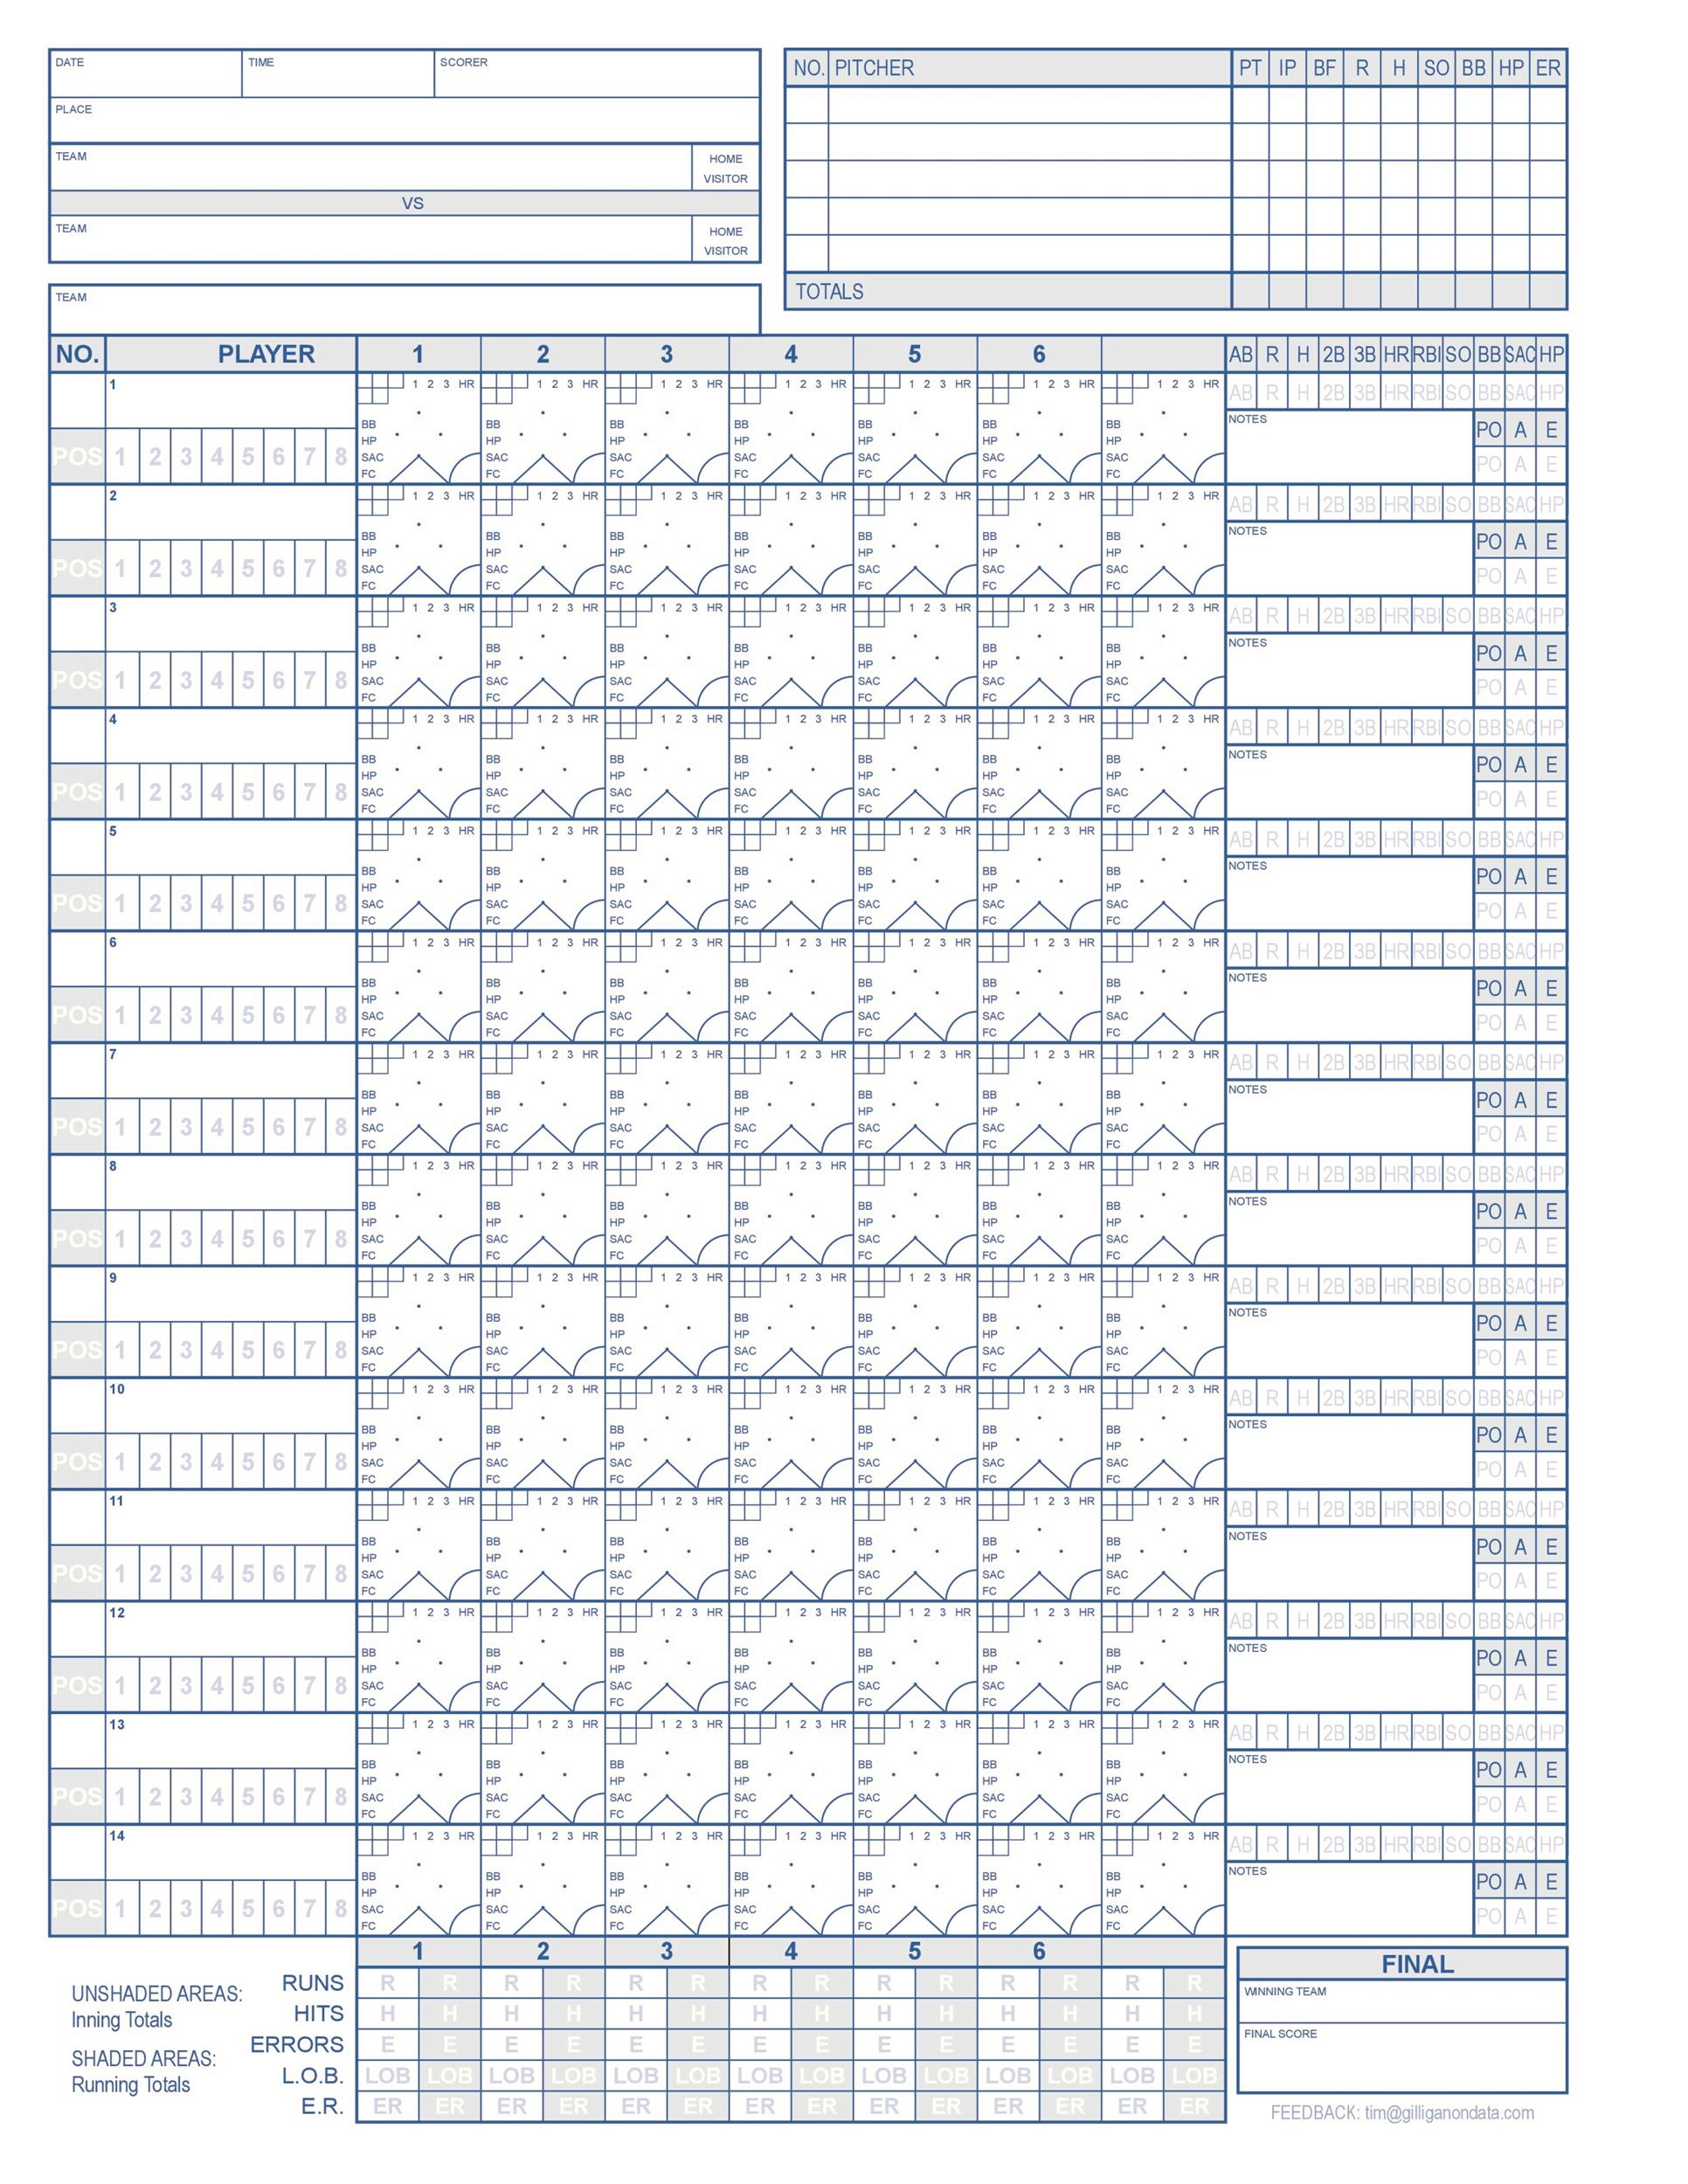 image regarding Baseball Scorebook Printable named 30+ Printable Baseball Scoresheet / Scorecard Templates ᐅ